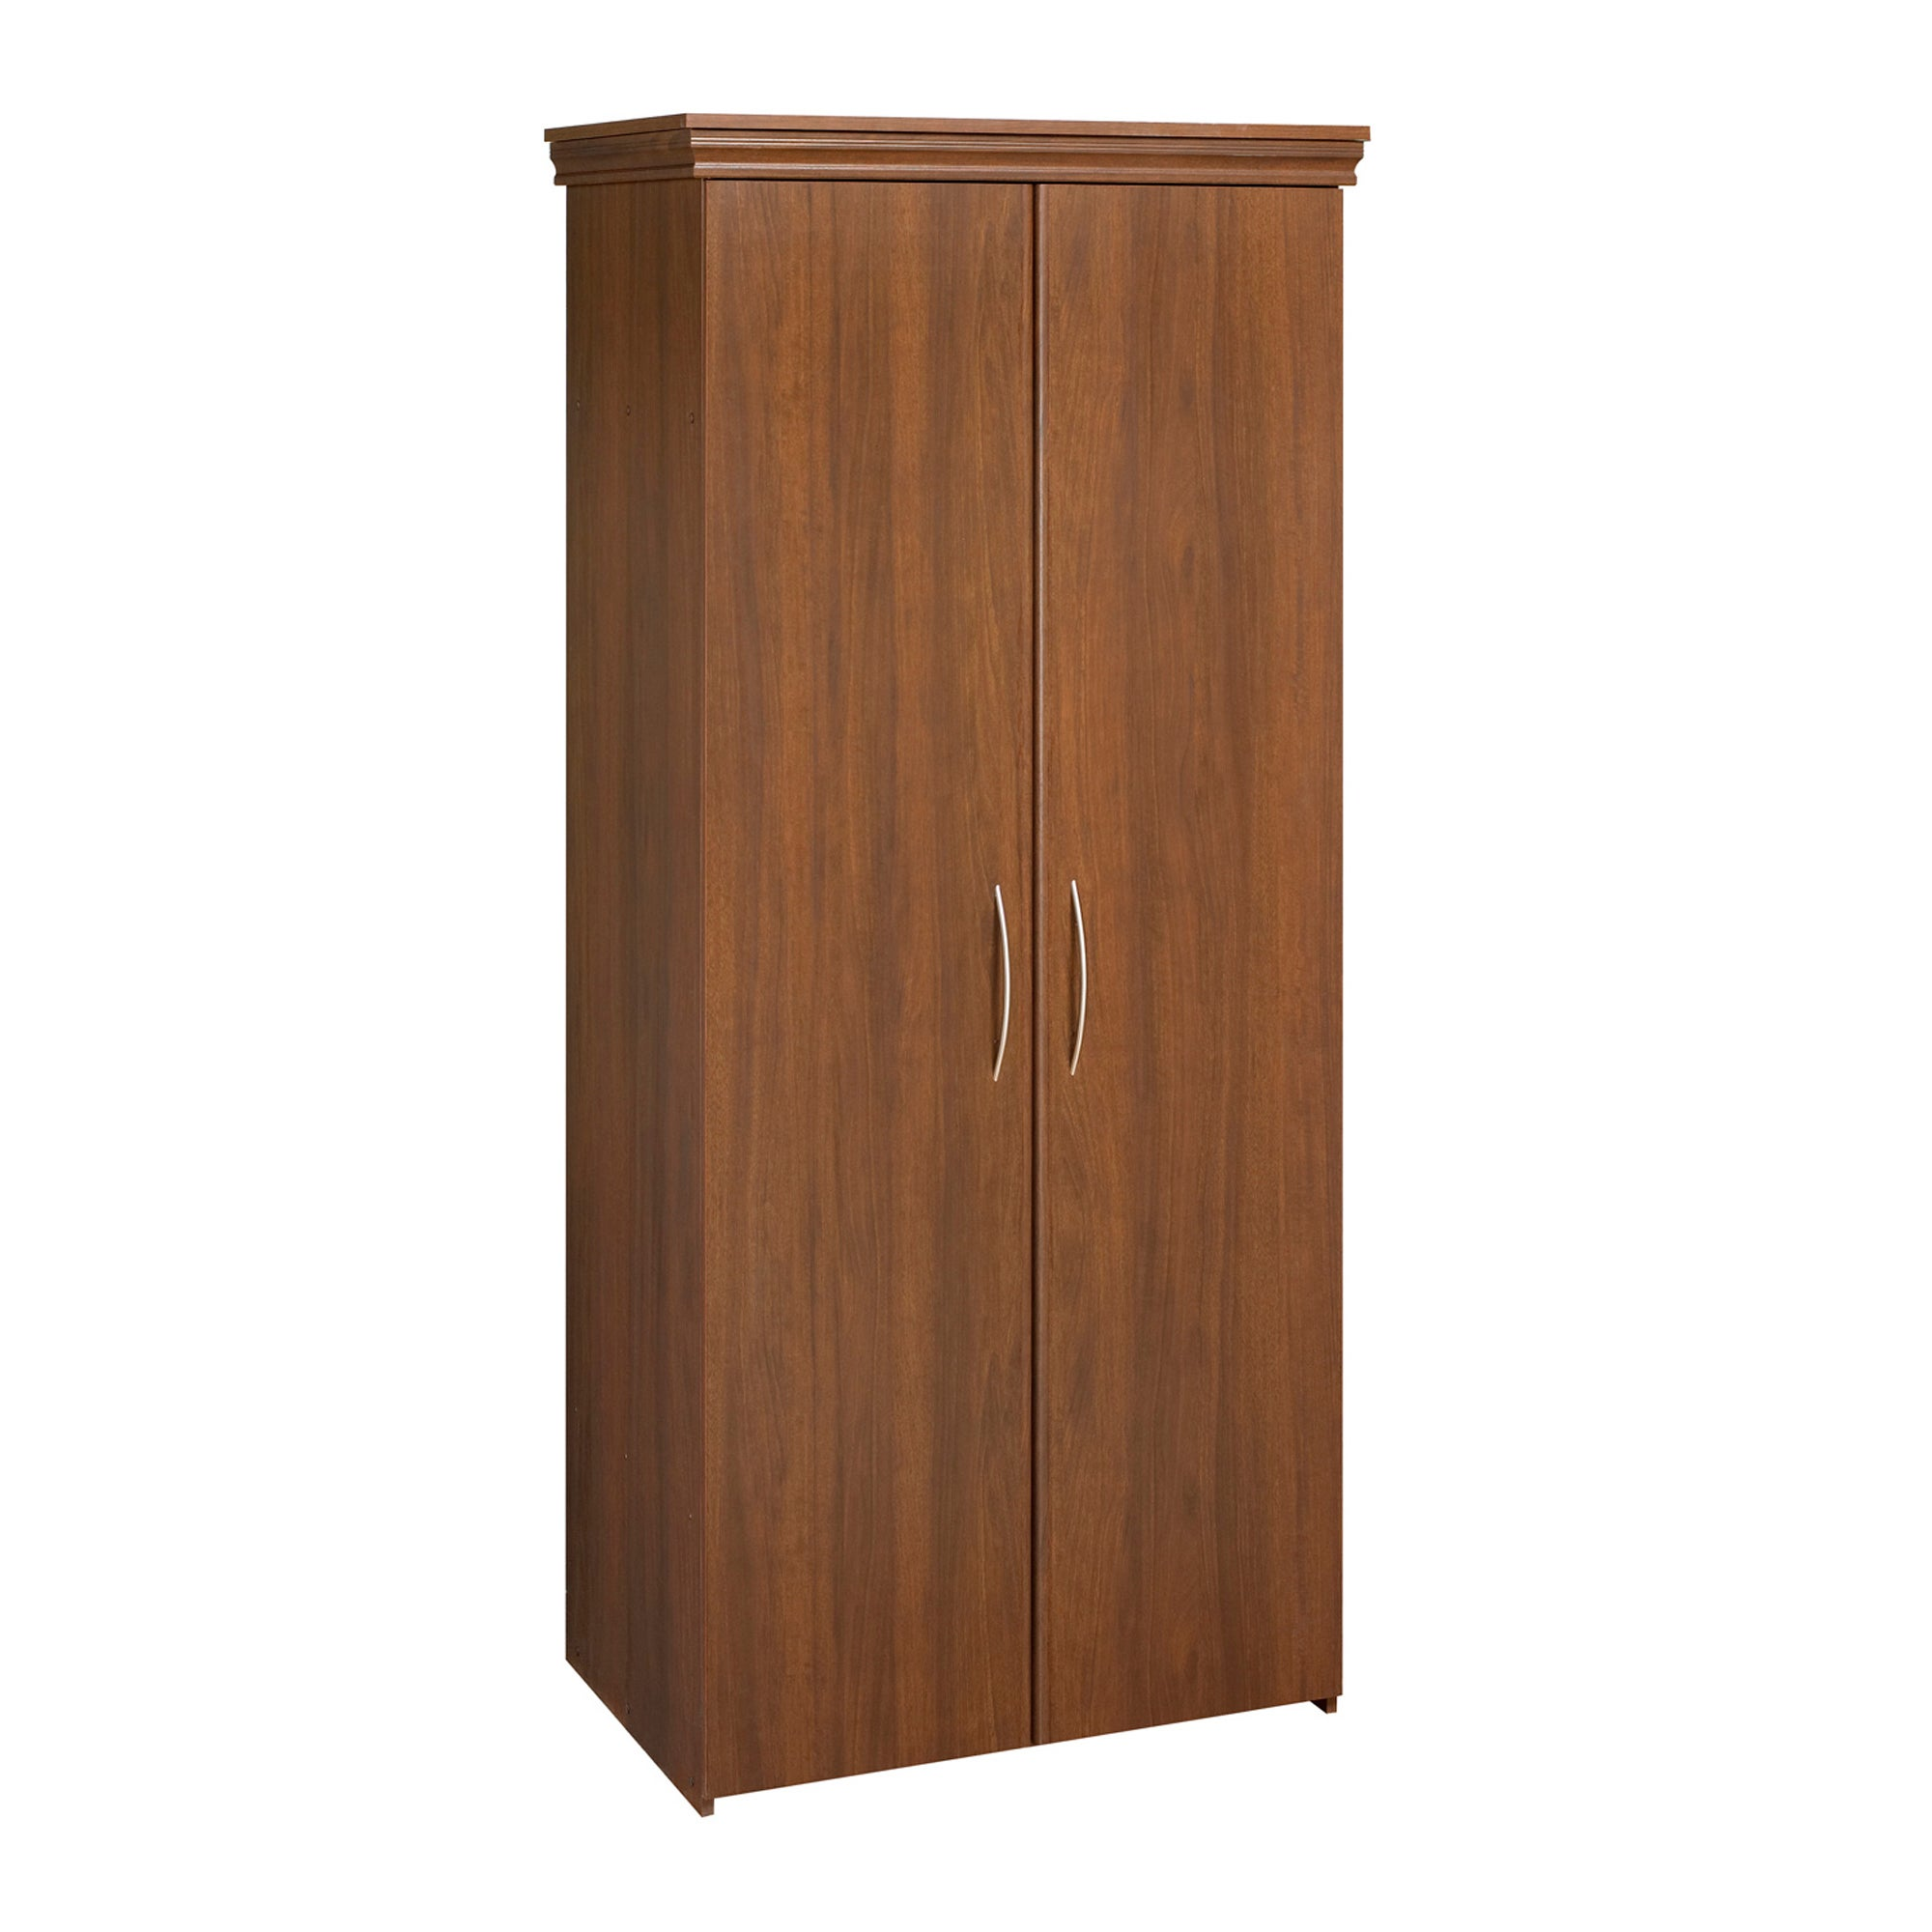 Black & Decker Wardrobe, Walnut at Sears.com